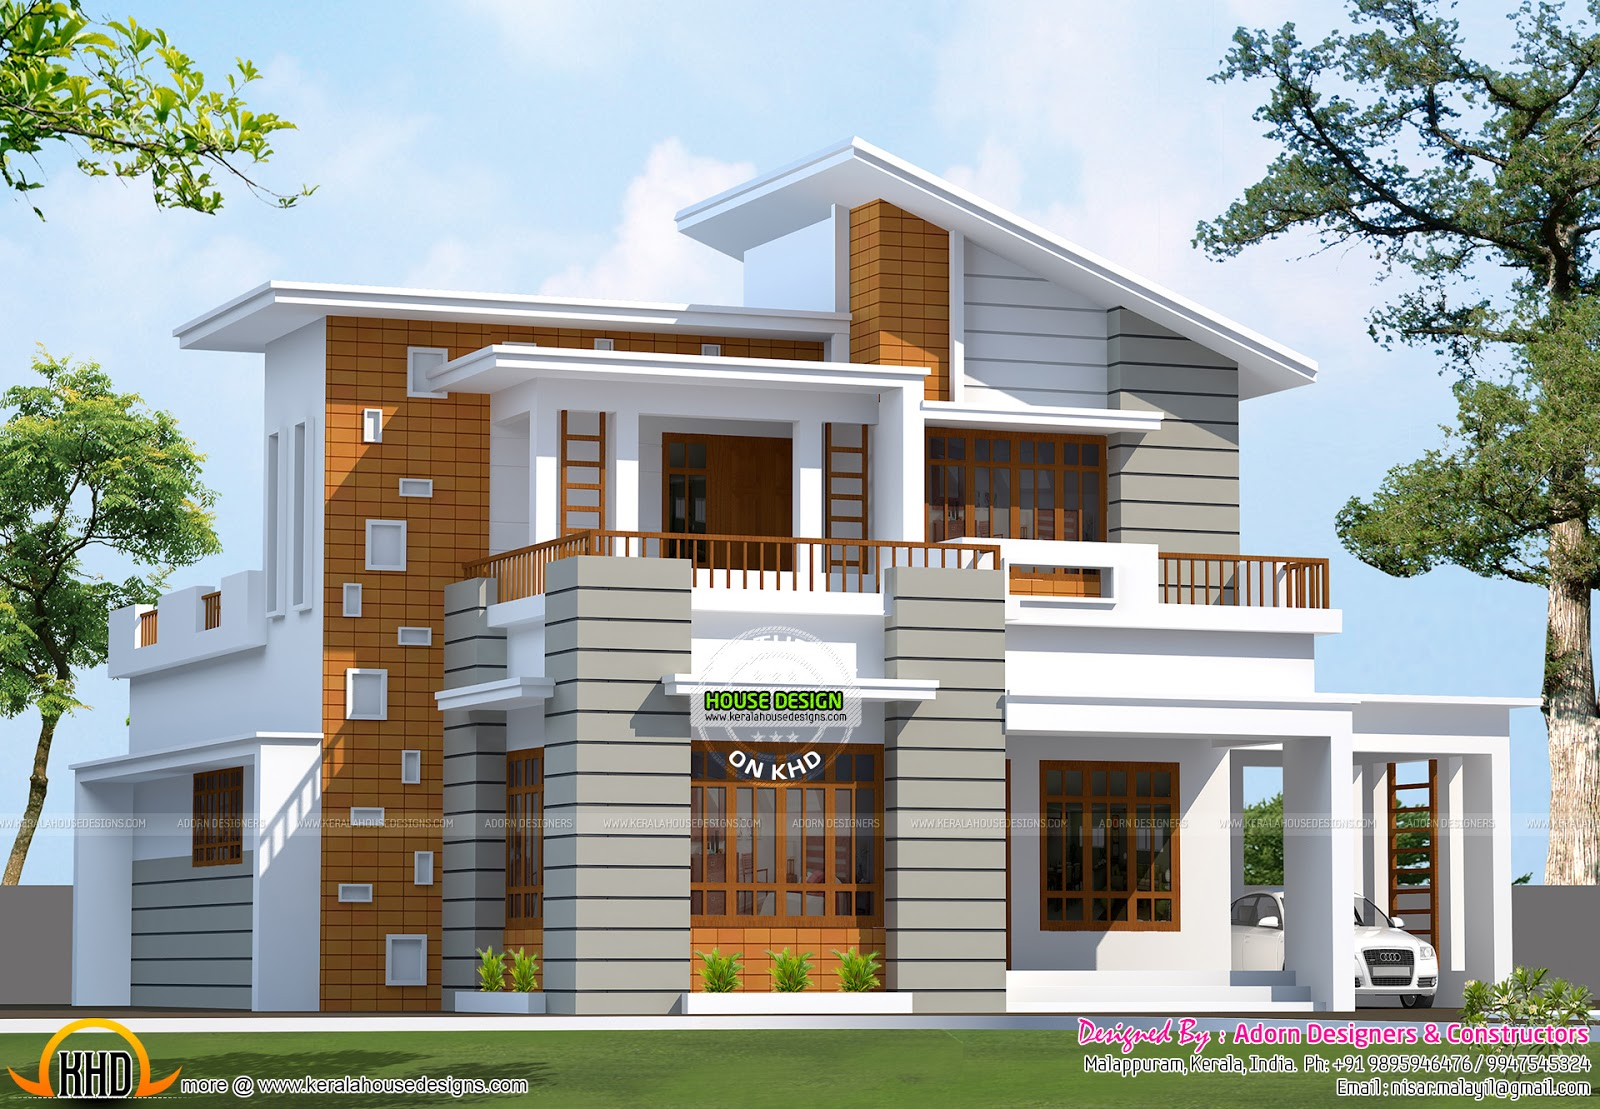 Indian house outlook design modern house for House designers